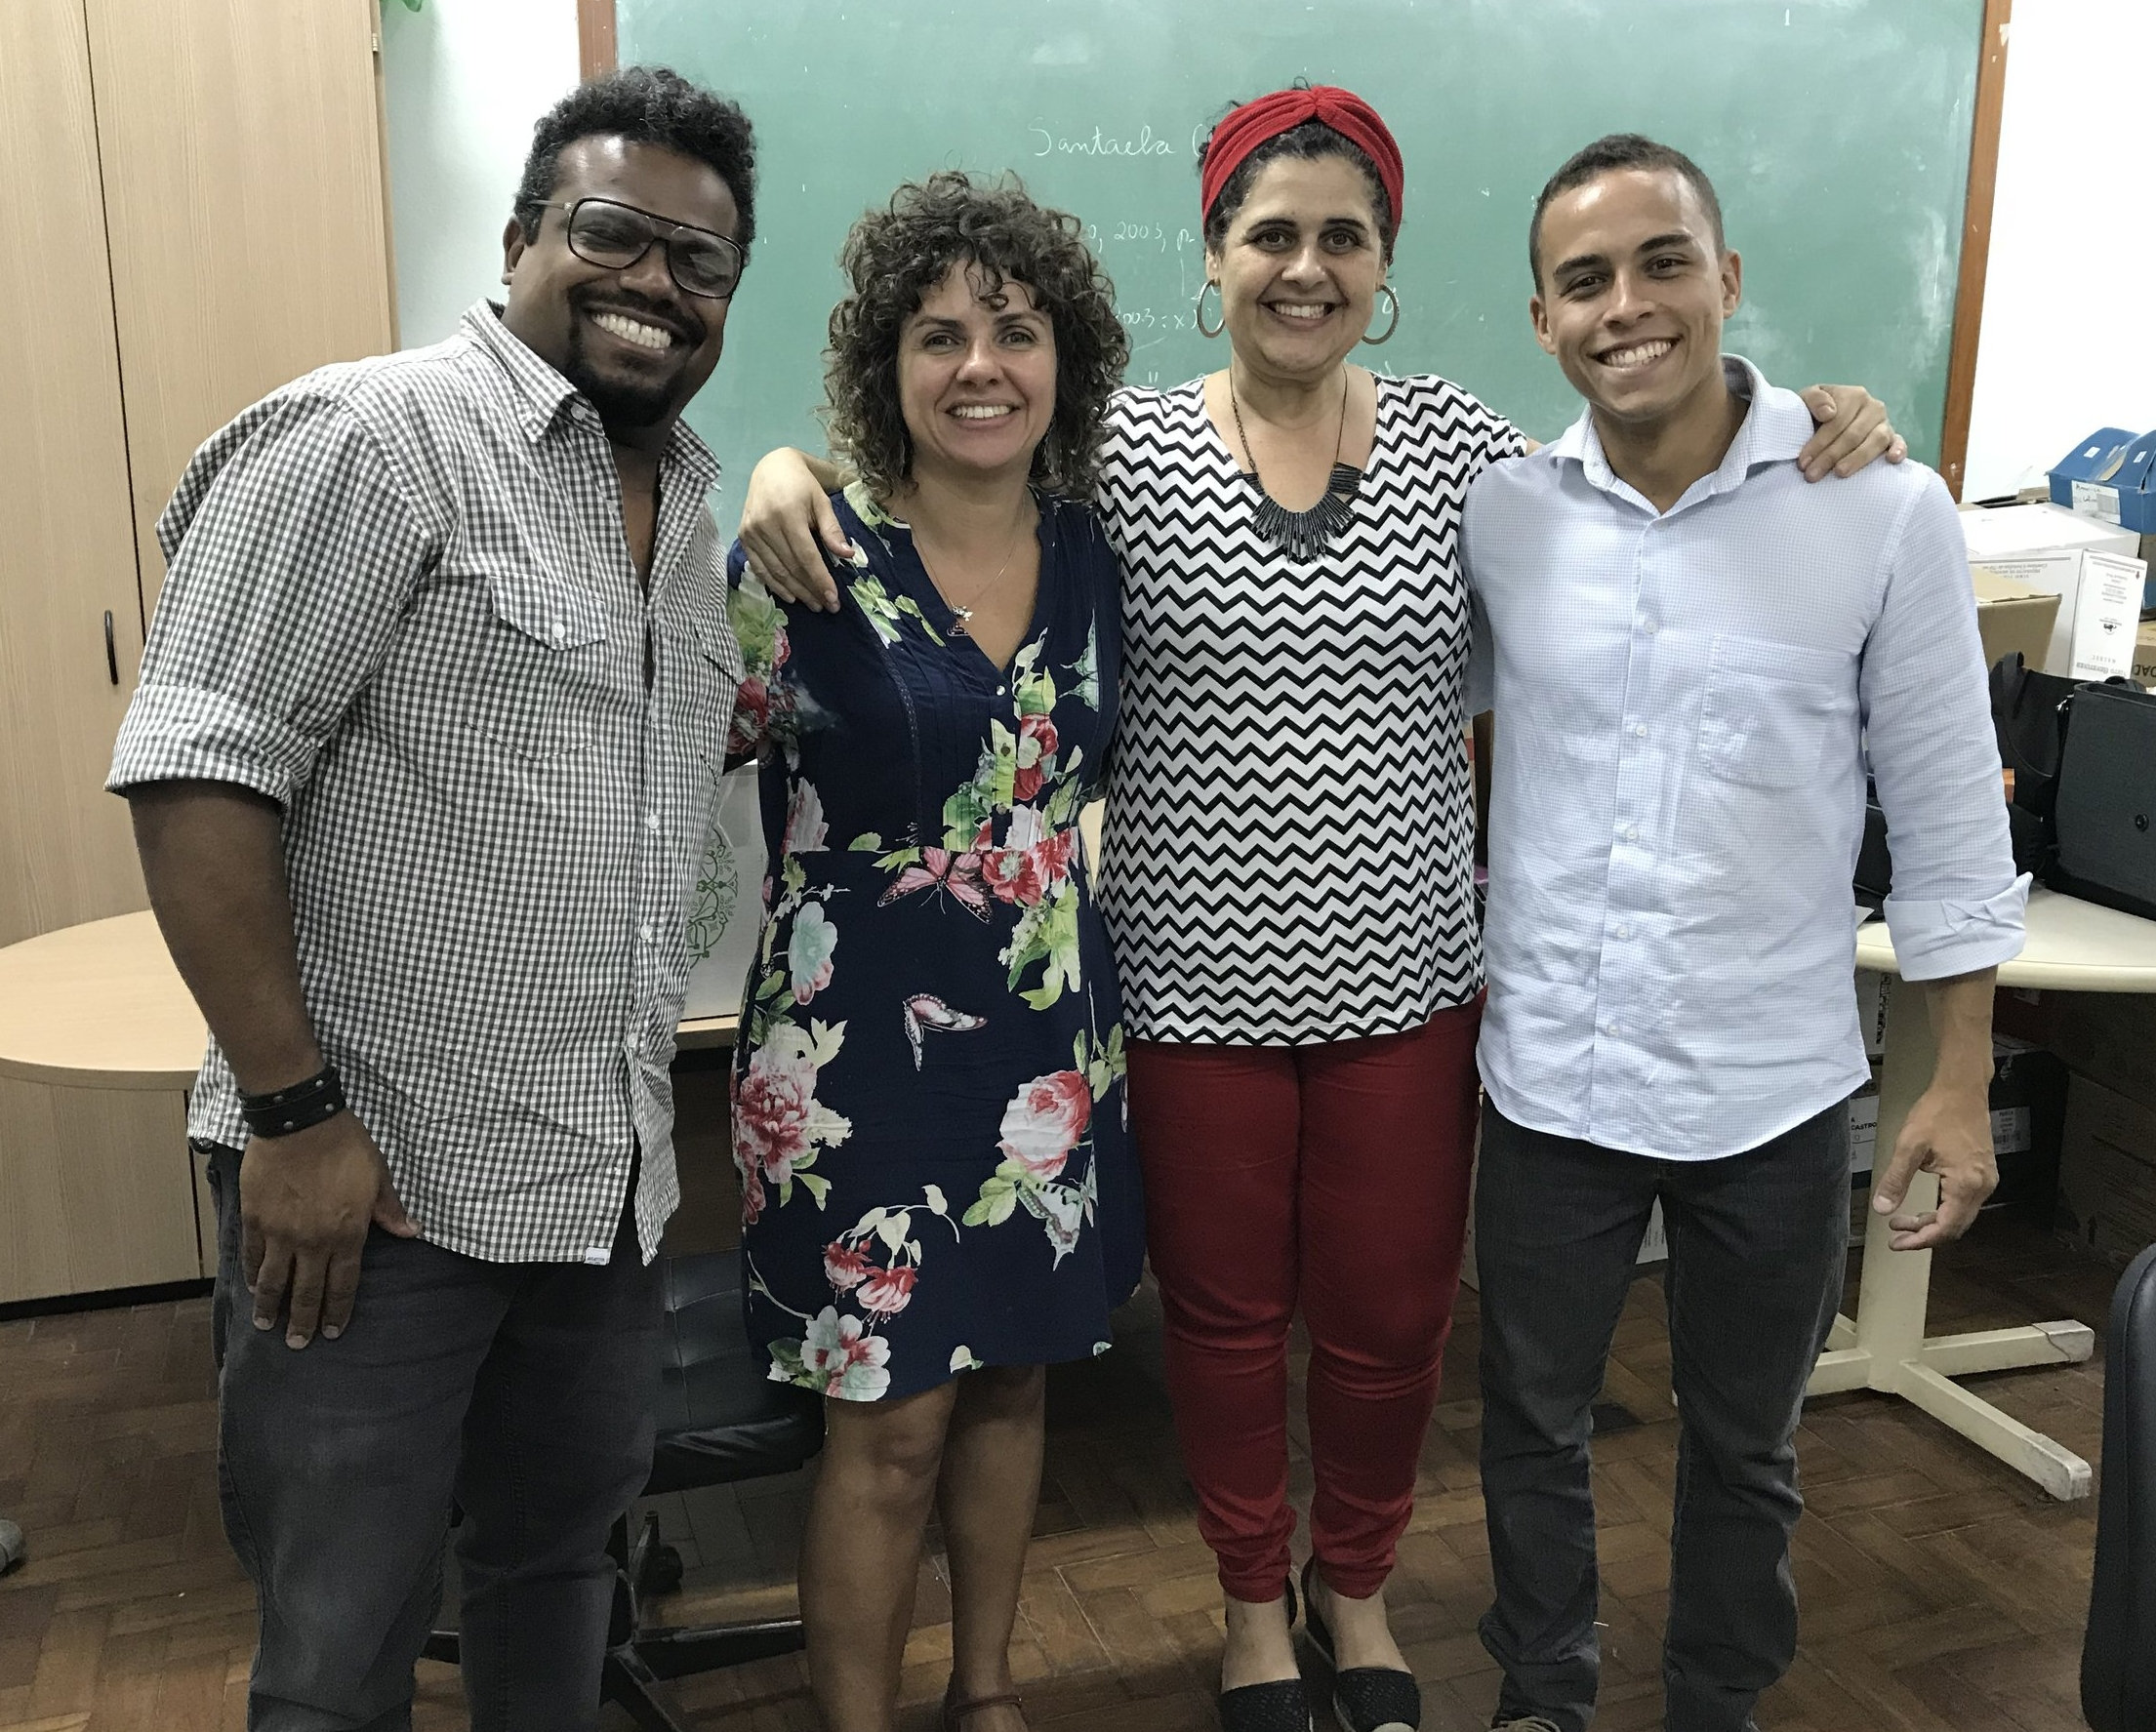 Photo after the defense of the Course Conclusion Project at the Rural Federal University of Rio de Janeiro. From left to right: Daniel; professor and tutor, Simone Orlando; and the professors of the examination board; Rejane Moreira and Wagner Costa.